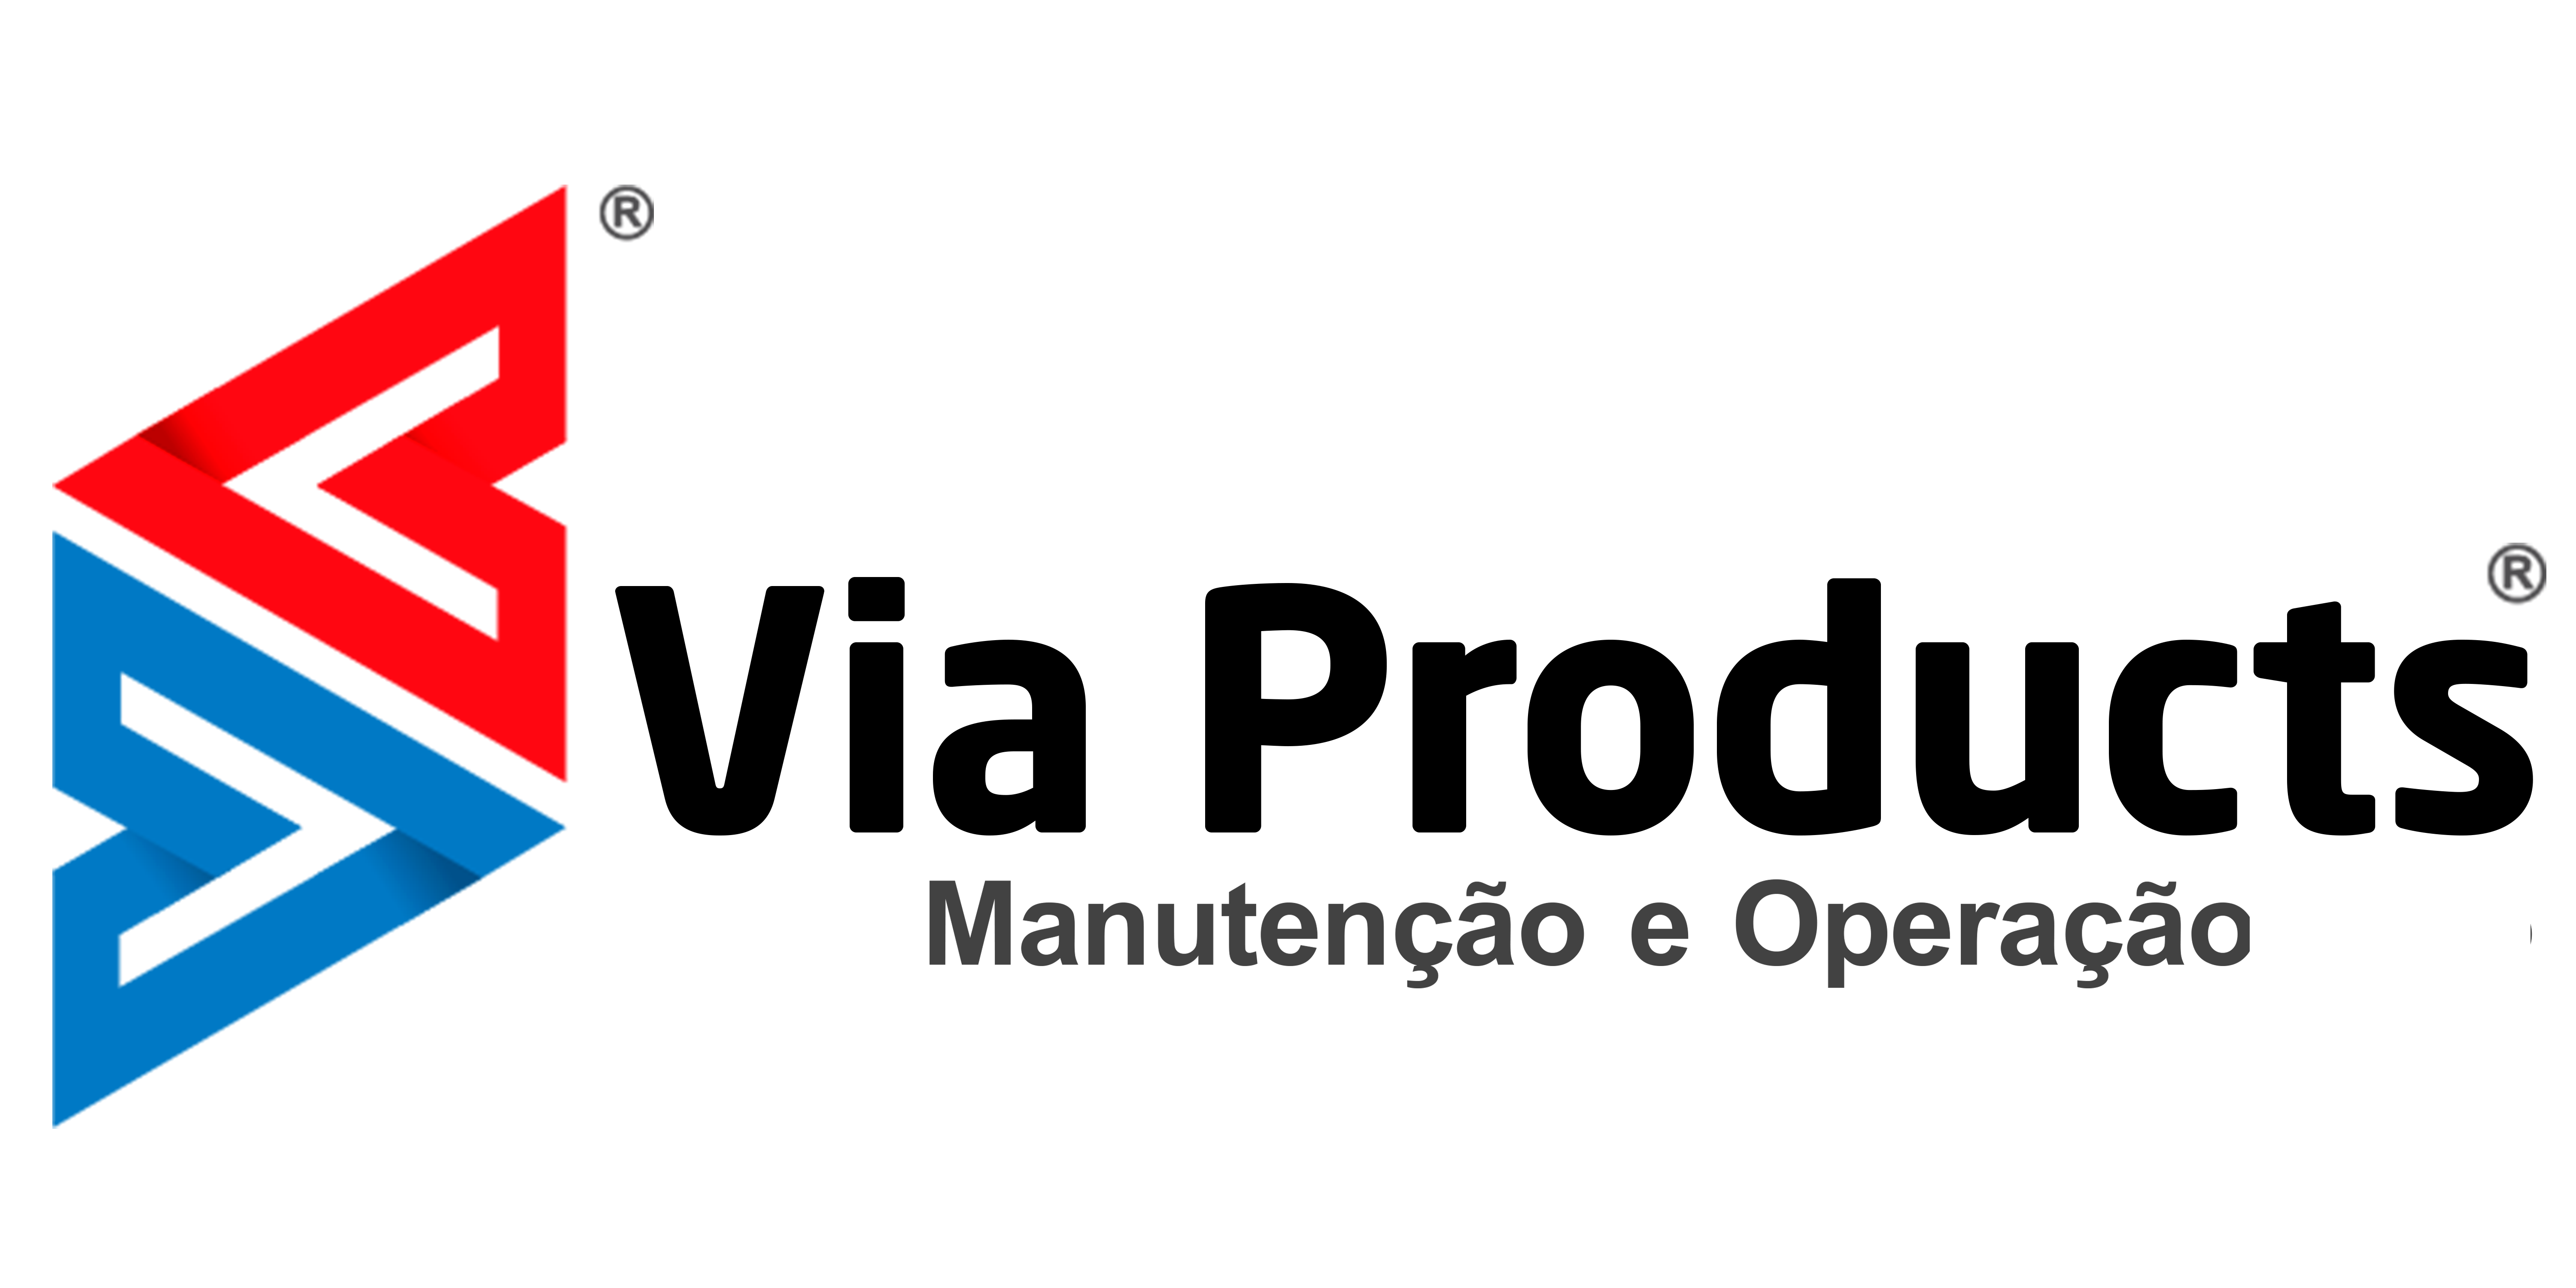 www.viaproducts.com.br